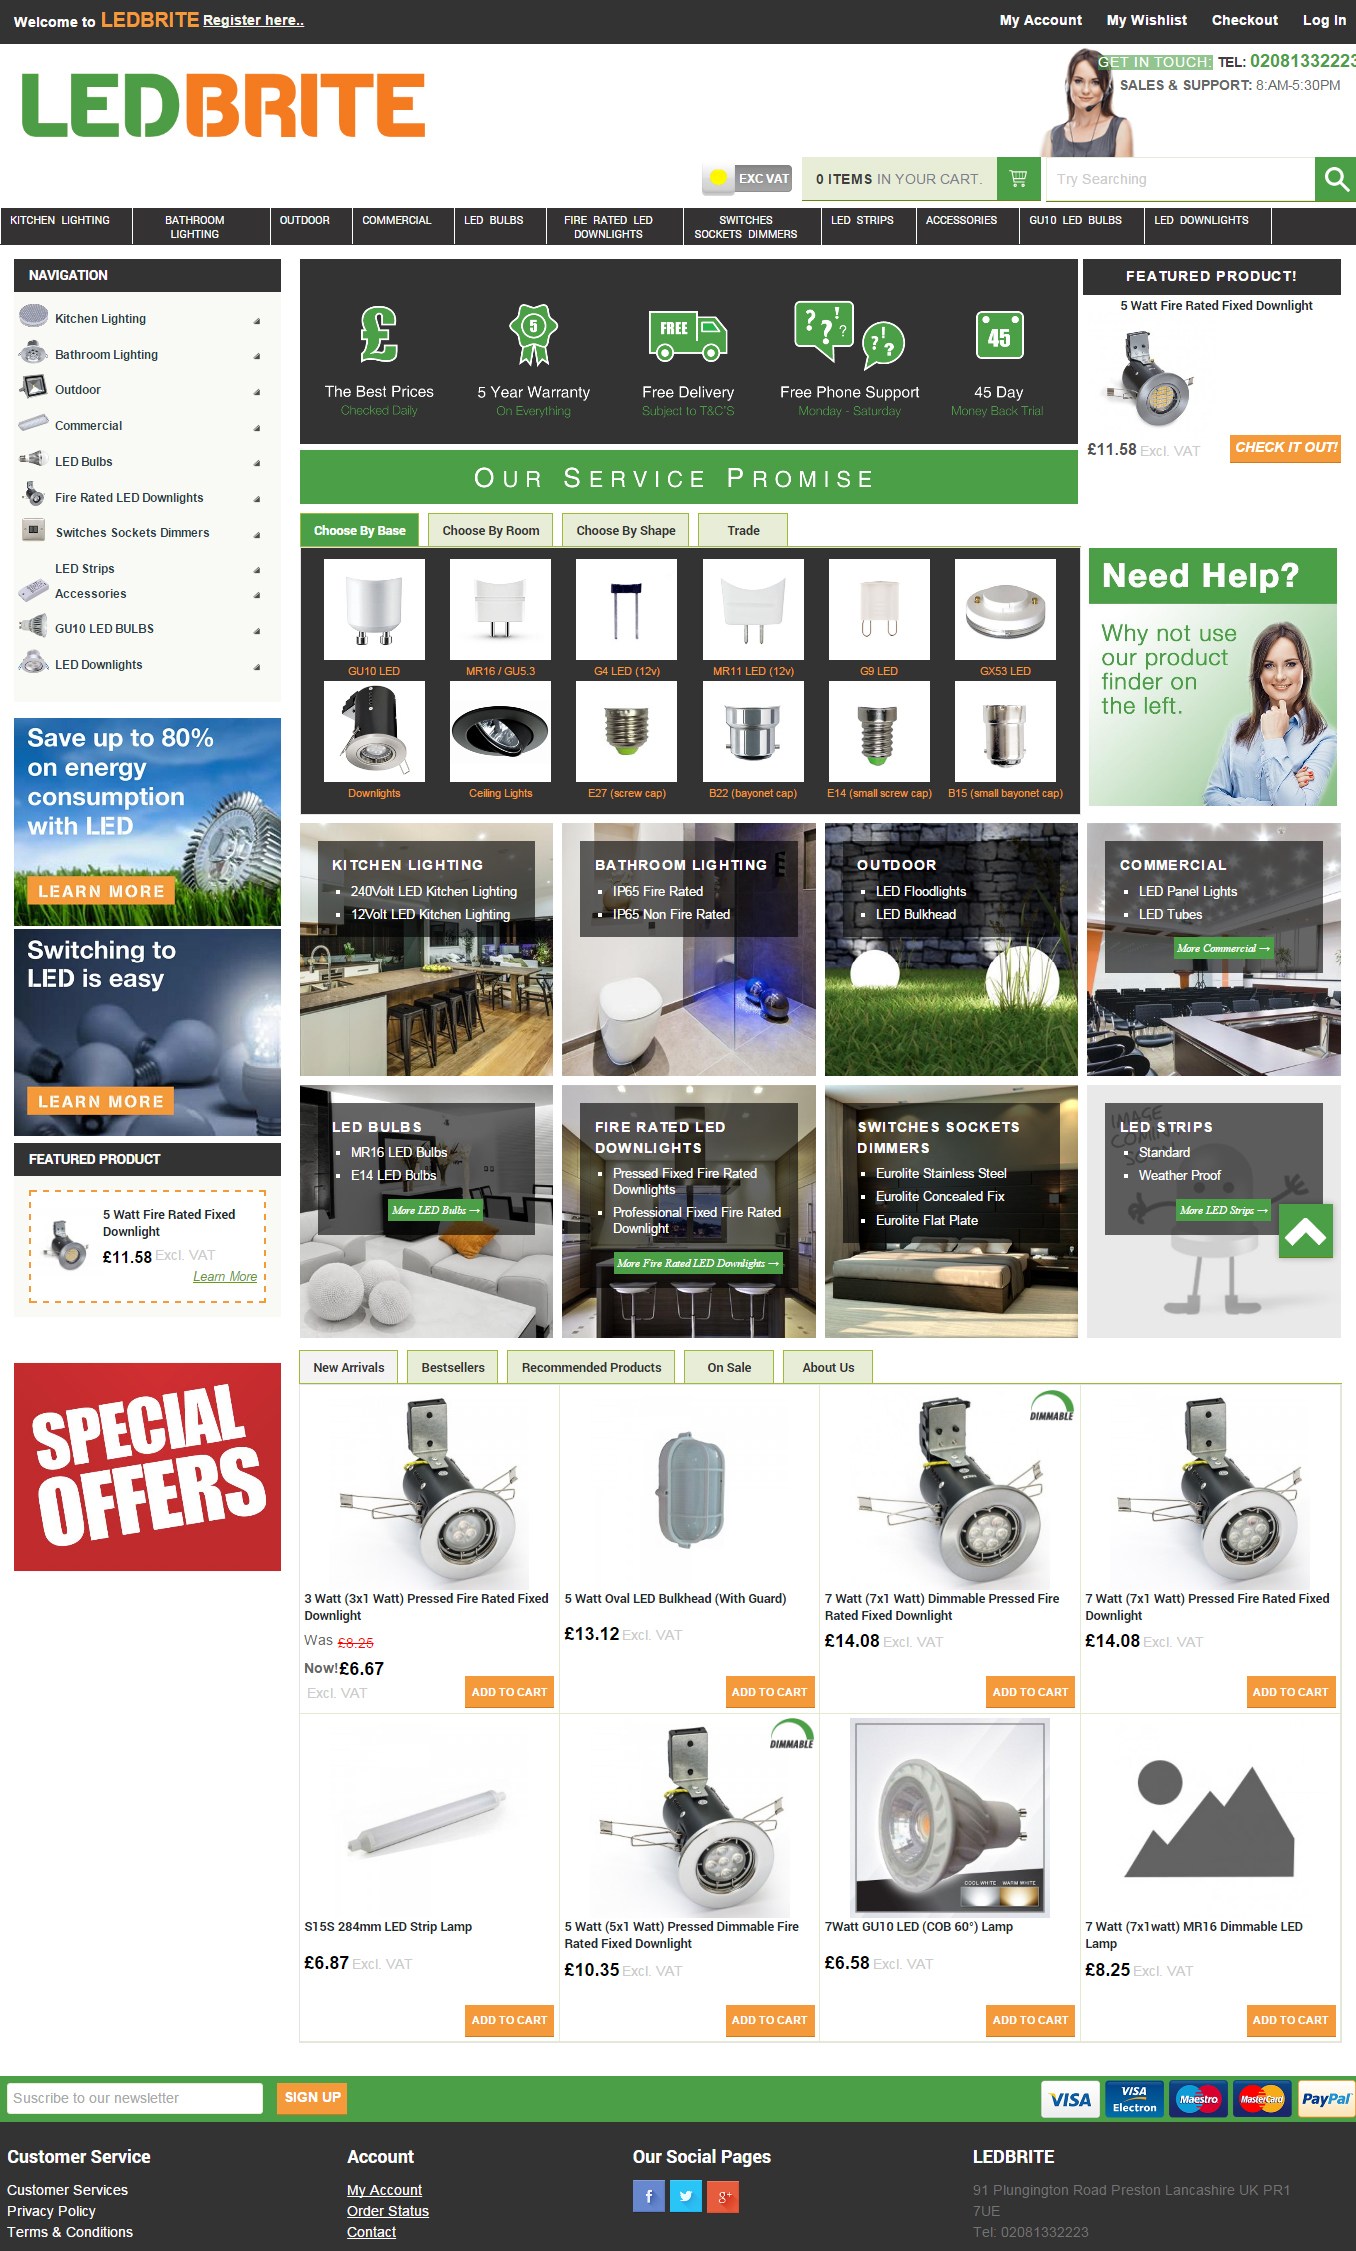 LEDBRITE Magento commerce website design